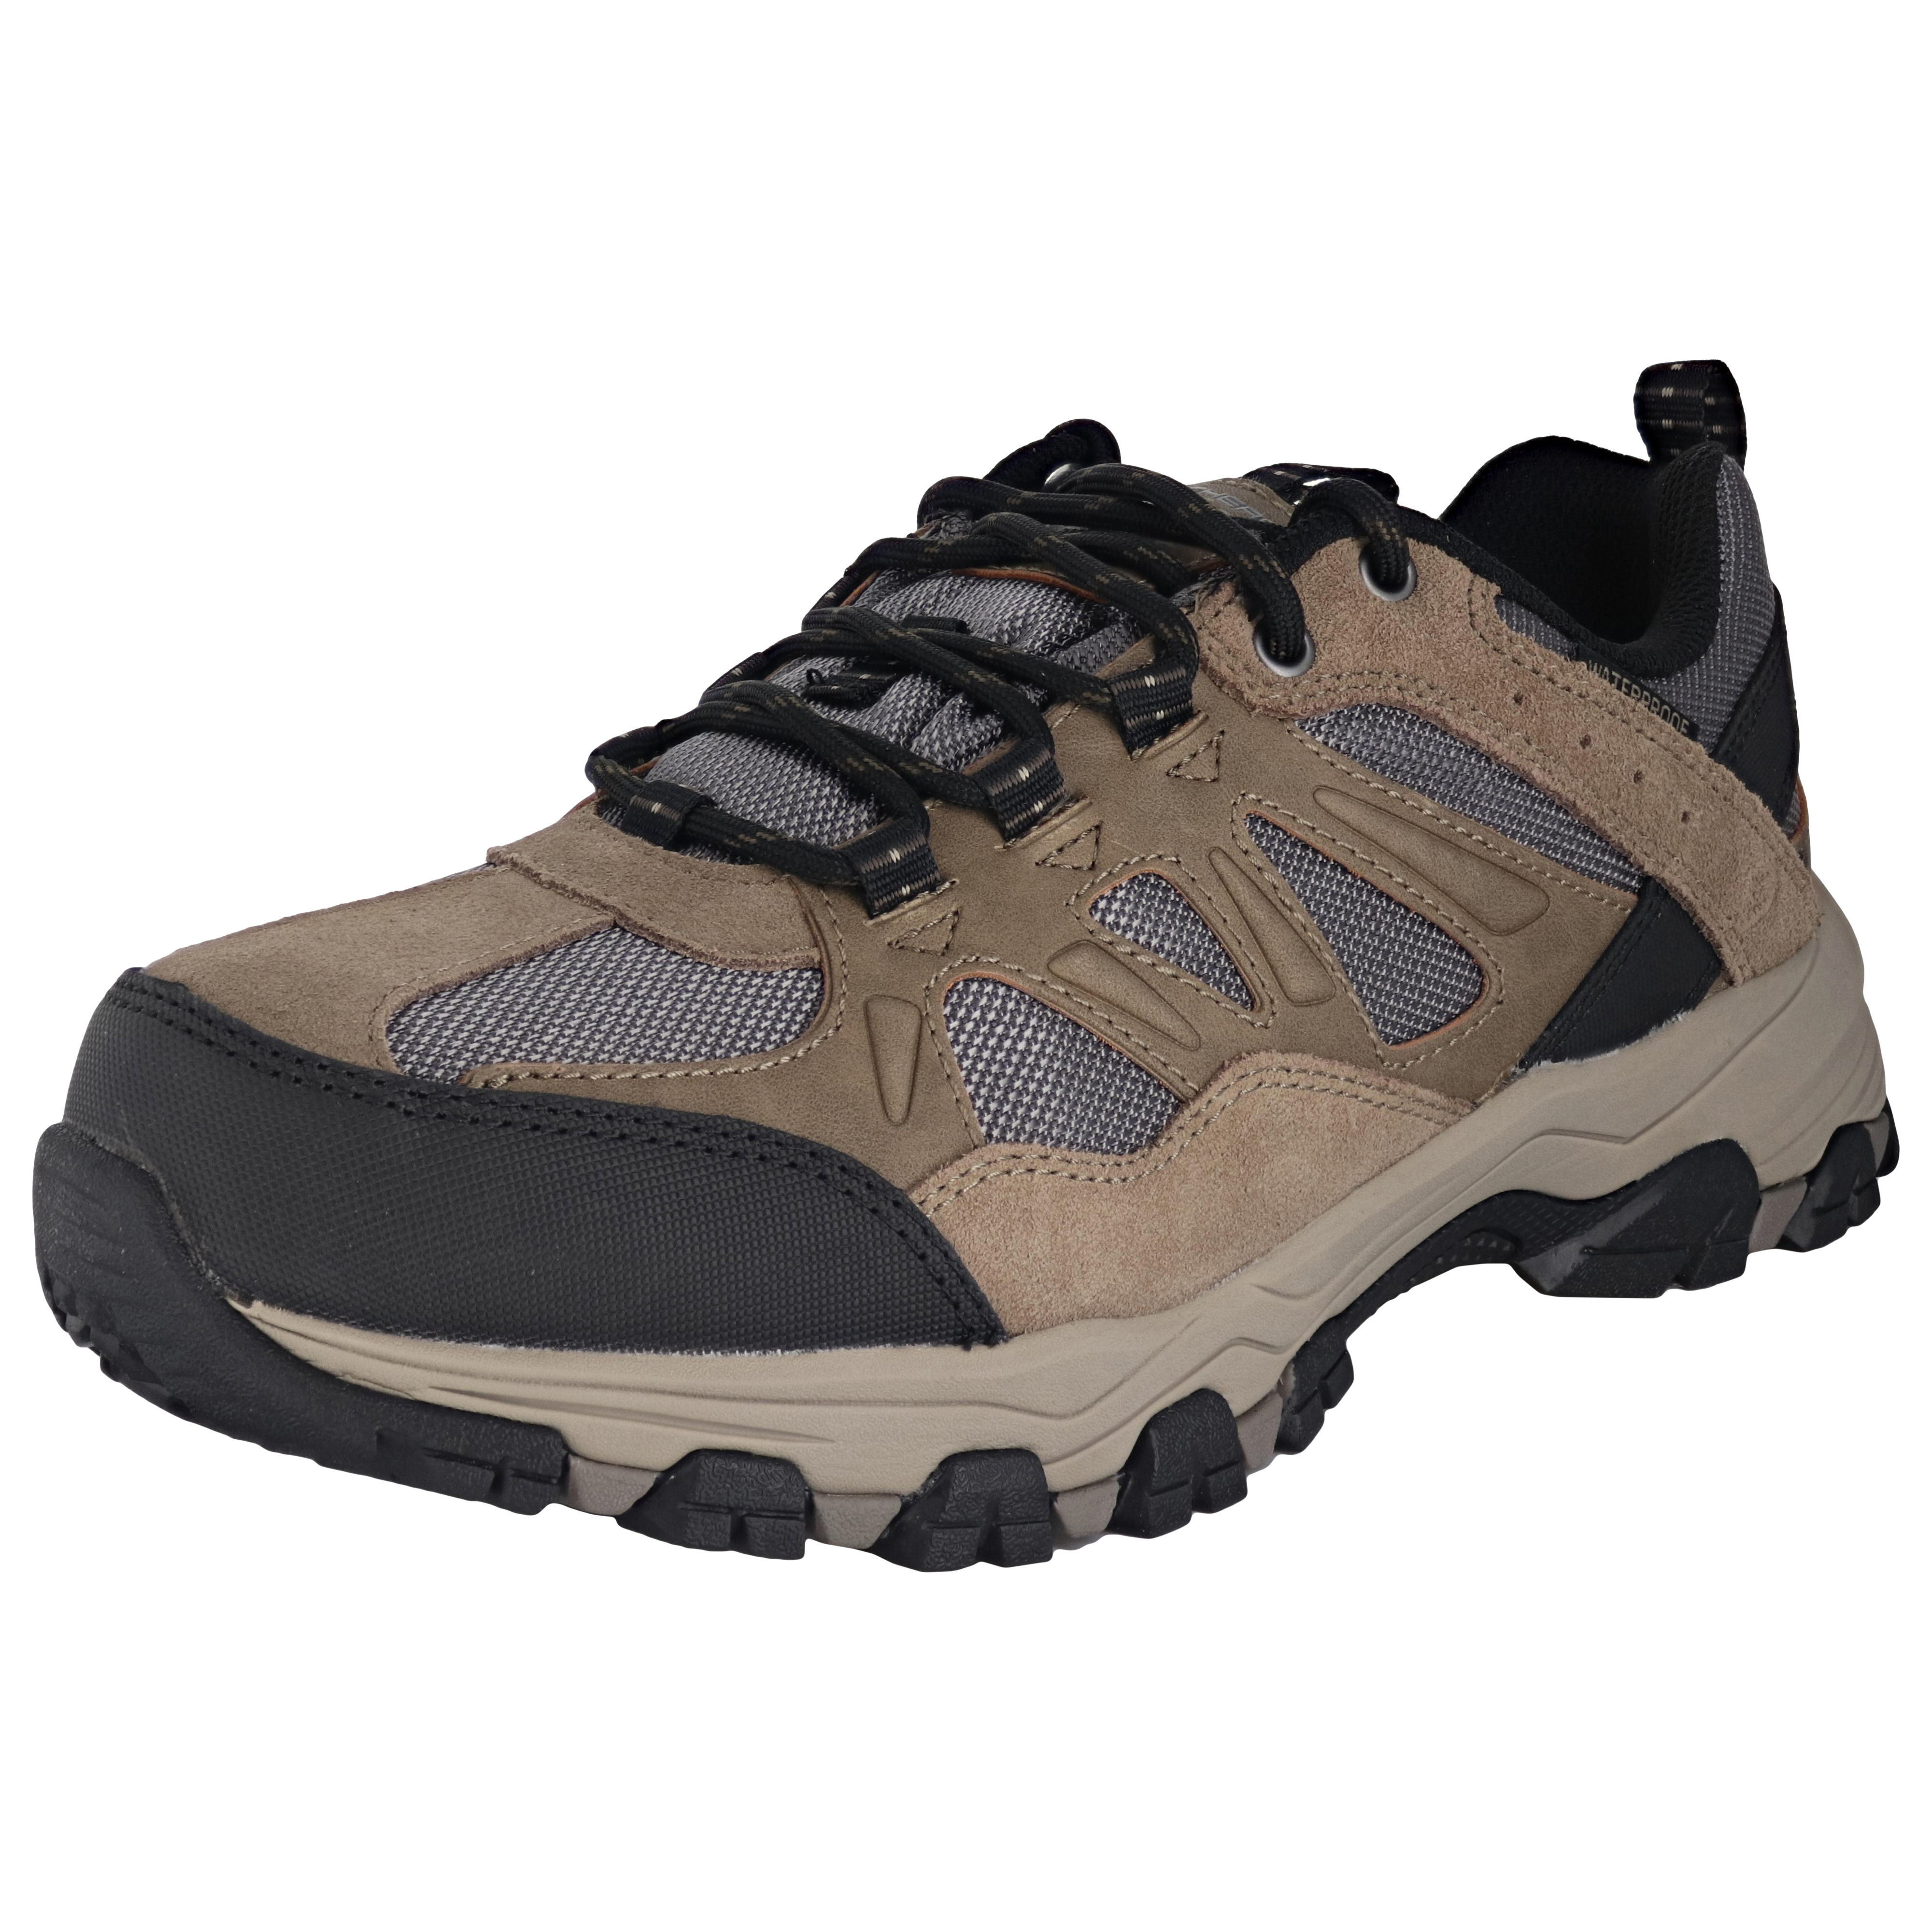 Skechers Shoes Online Outlet | Skechers Relaxed Fit